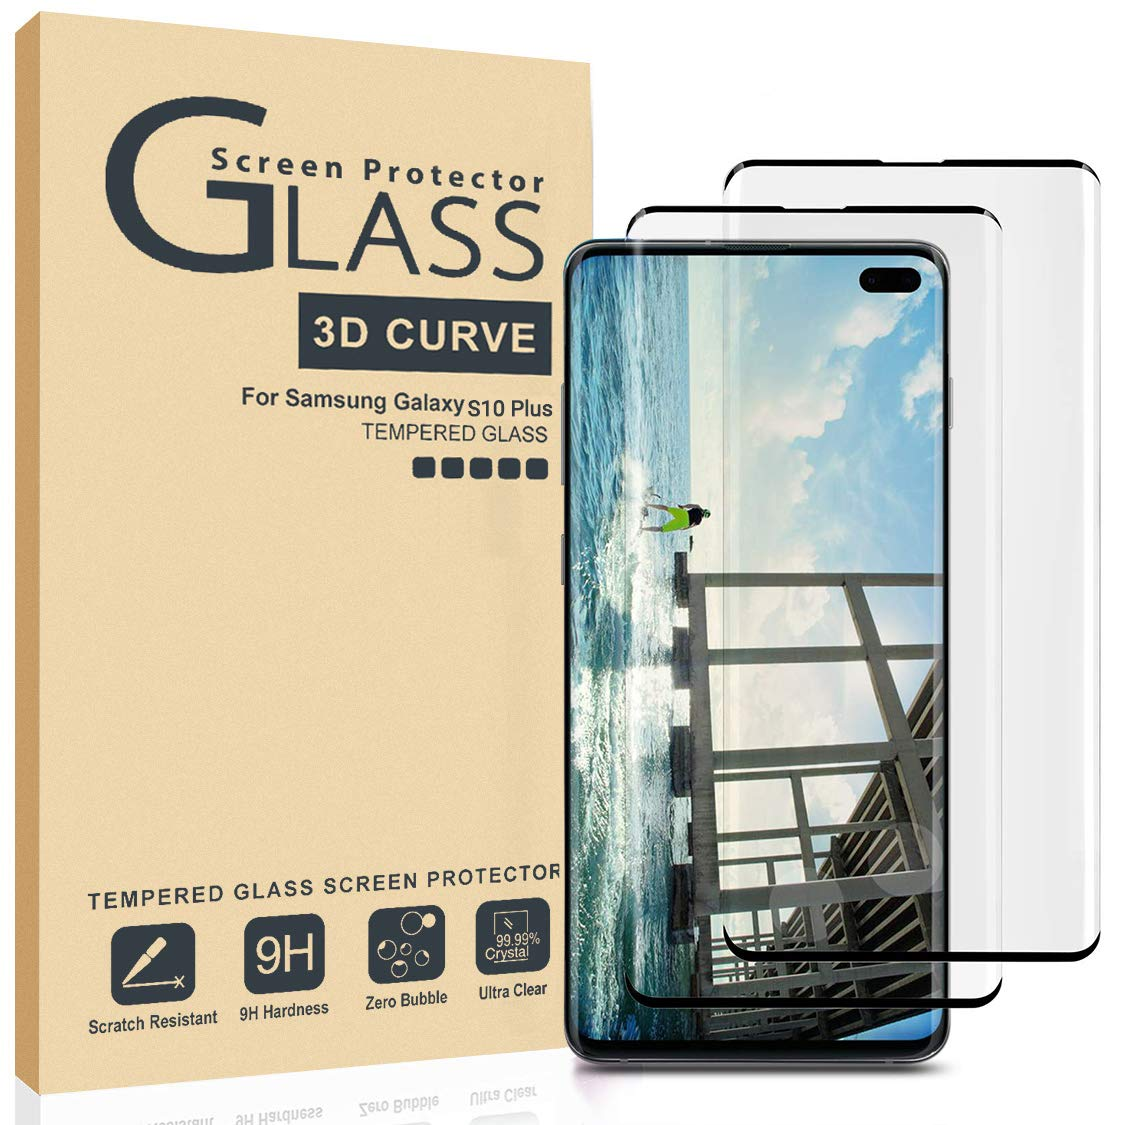 AILIBOTE Glass Screen Protector for Samsung Galaxy S10 Plus,[2 Pack] 3D Curved Tempered Glass, Dot Matrix with Easy Installation Tray, Case Friendly(Black) by AILIBOTE